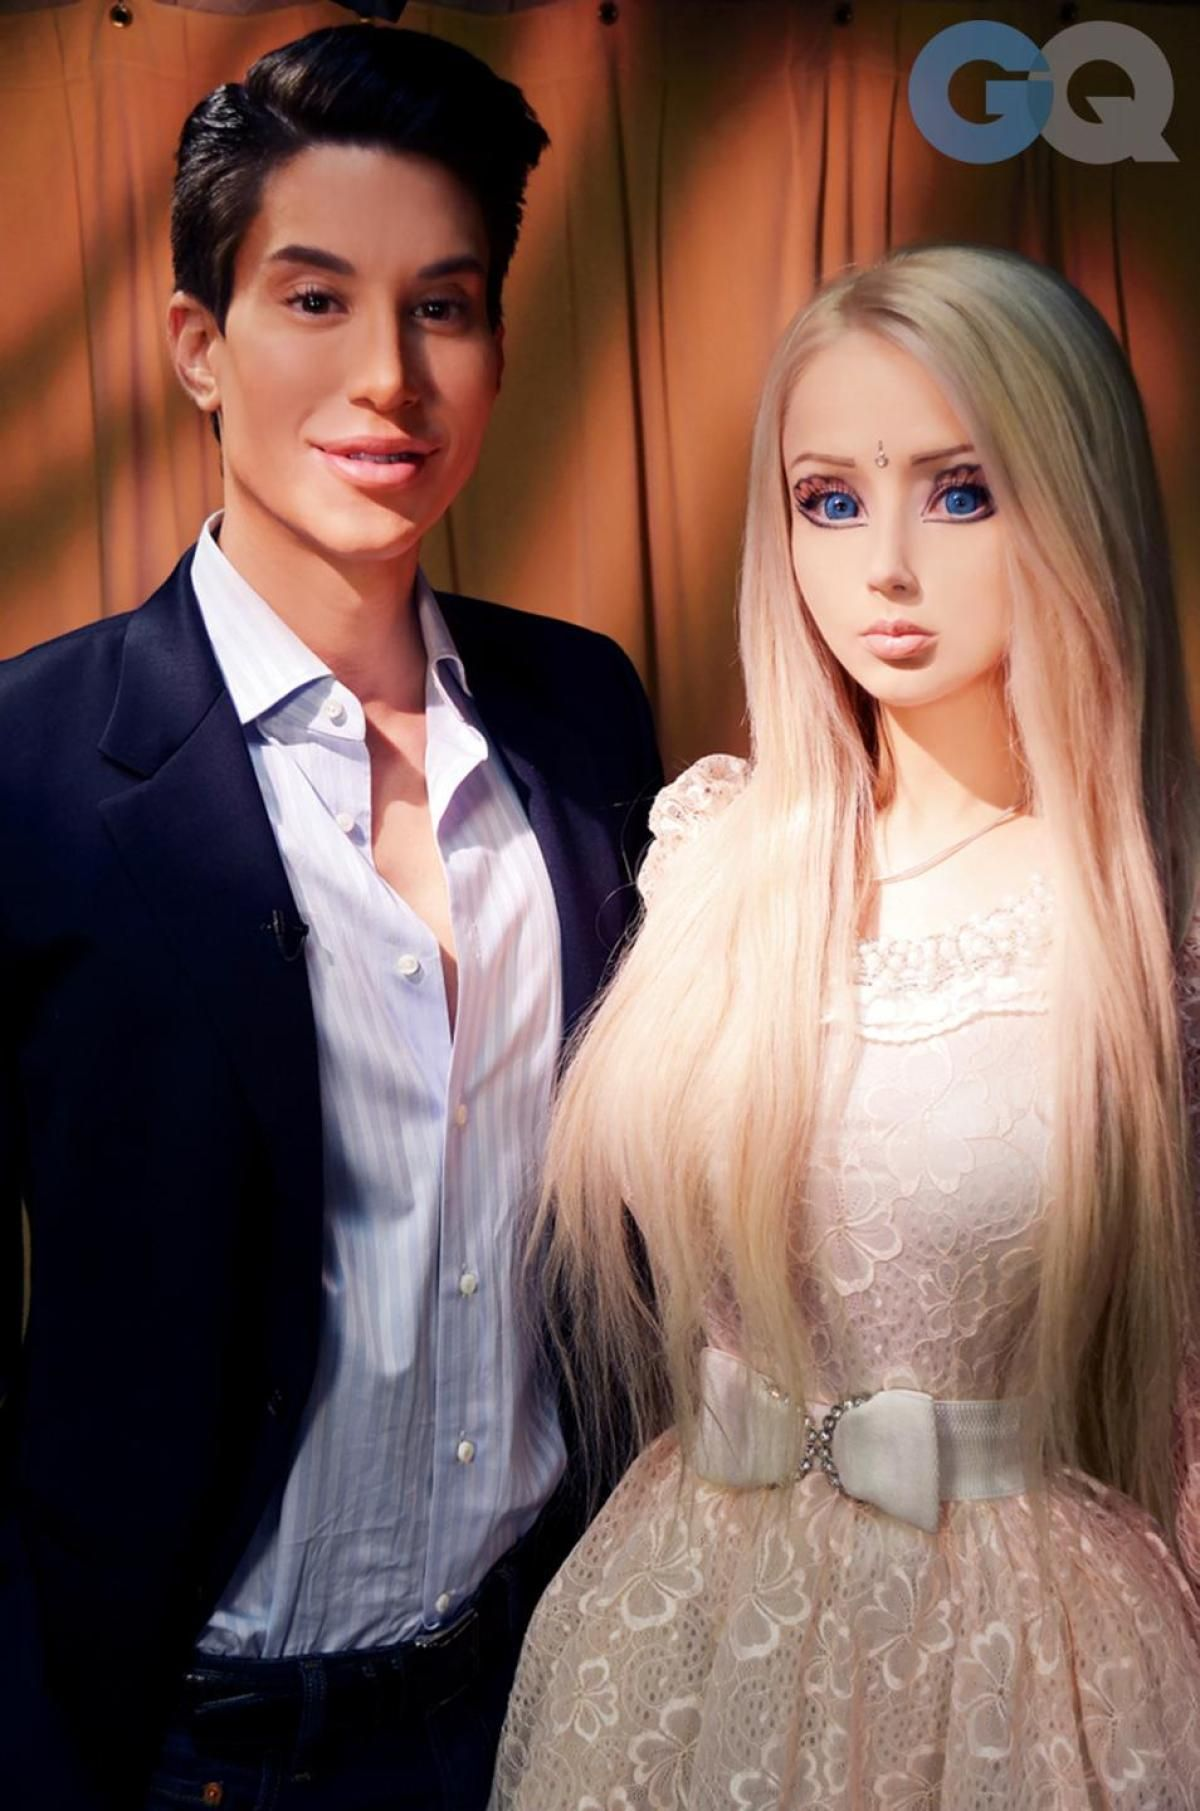 'Human Ken Doll' Justin Jedlica says he doesn't 'really get' his counterpart, Valeria Lukyanova aka 'Human Barbie